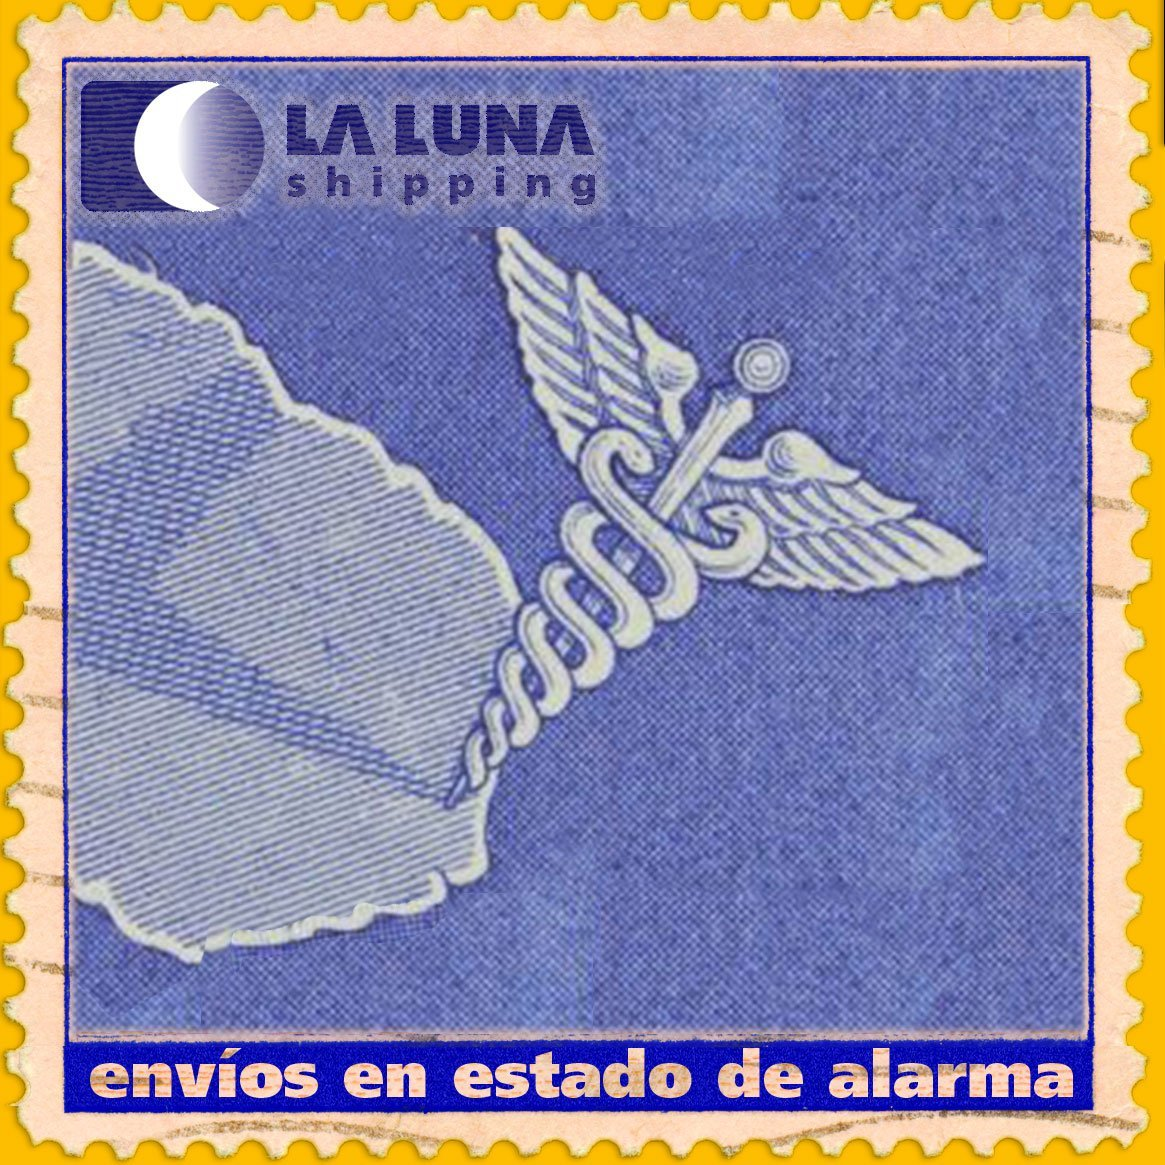 la-luna-shipping-envios-en-estado-de-alarma-preguntas-frecuentes-faq-state-of-emergency-delivery-courier